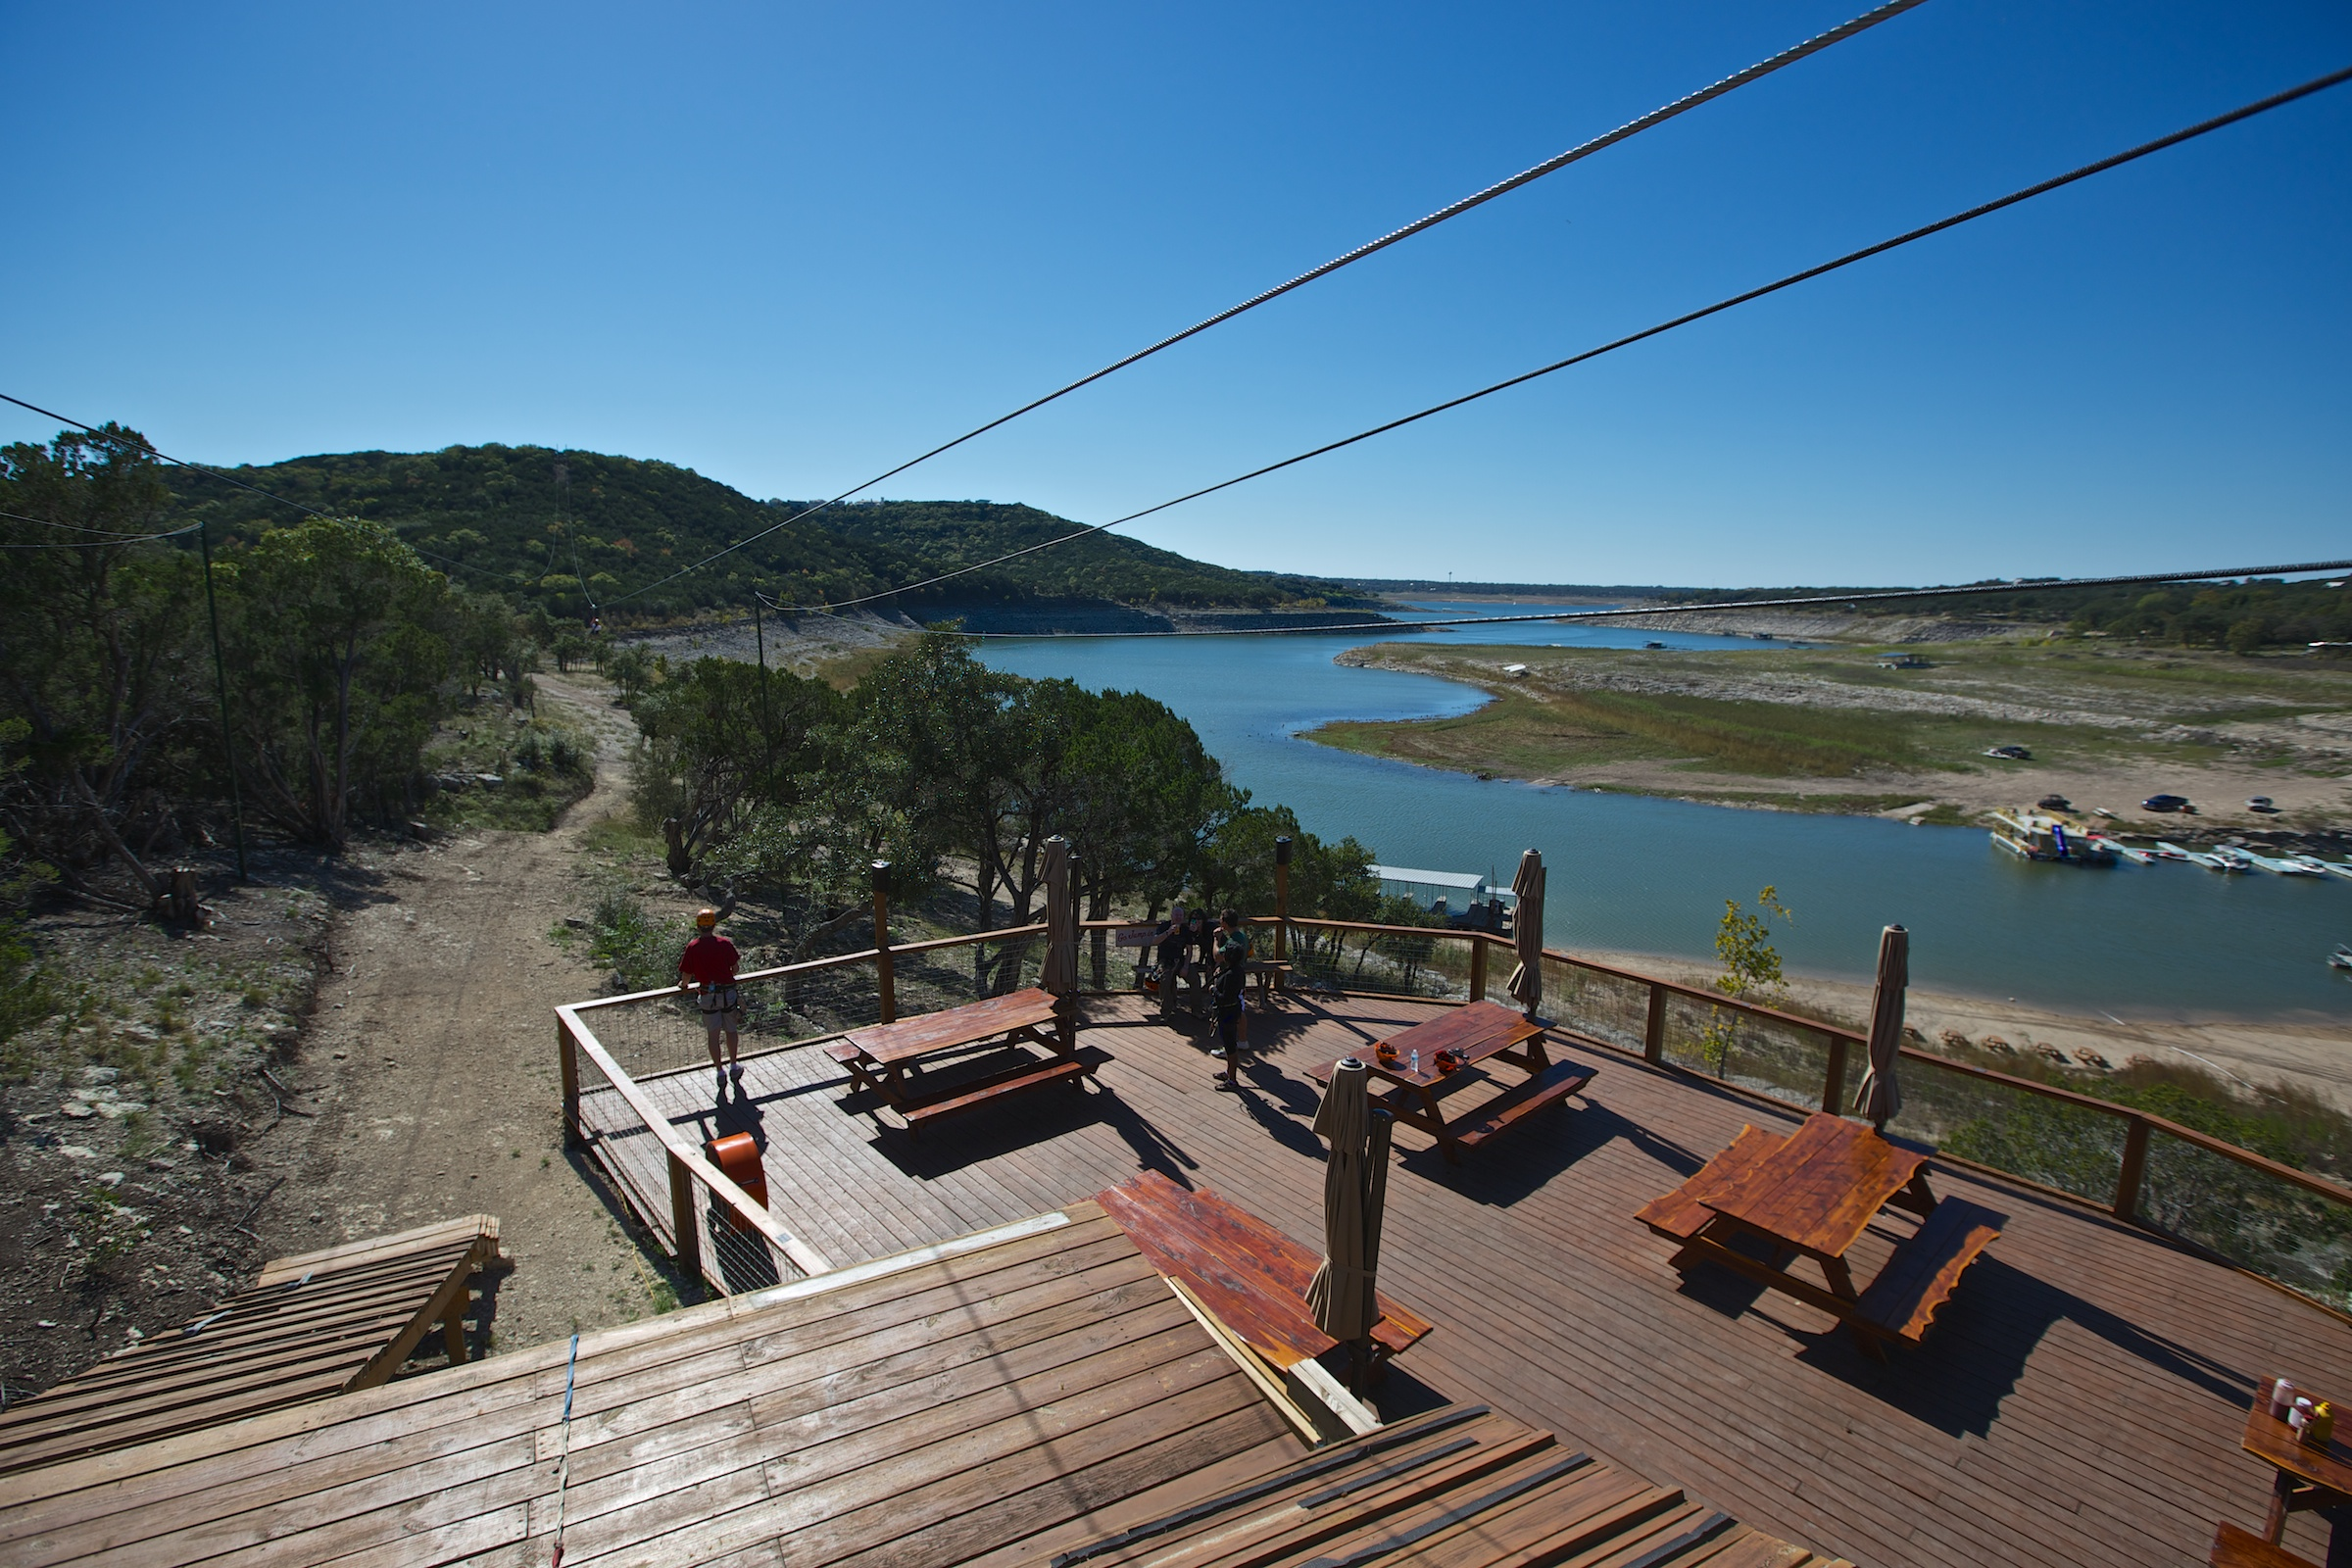 Lake travis ziplining claritin coupons home improvement do it yourself electrician general contractor handyman plumber renovation roofer the general contractor is a manager solutioingenieria Choice Image